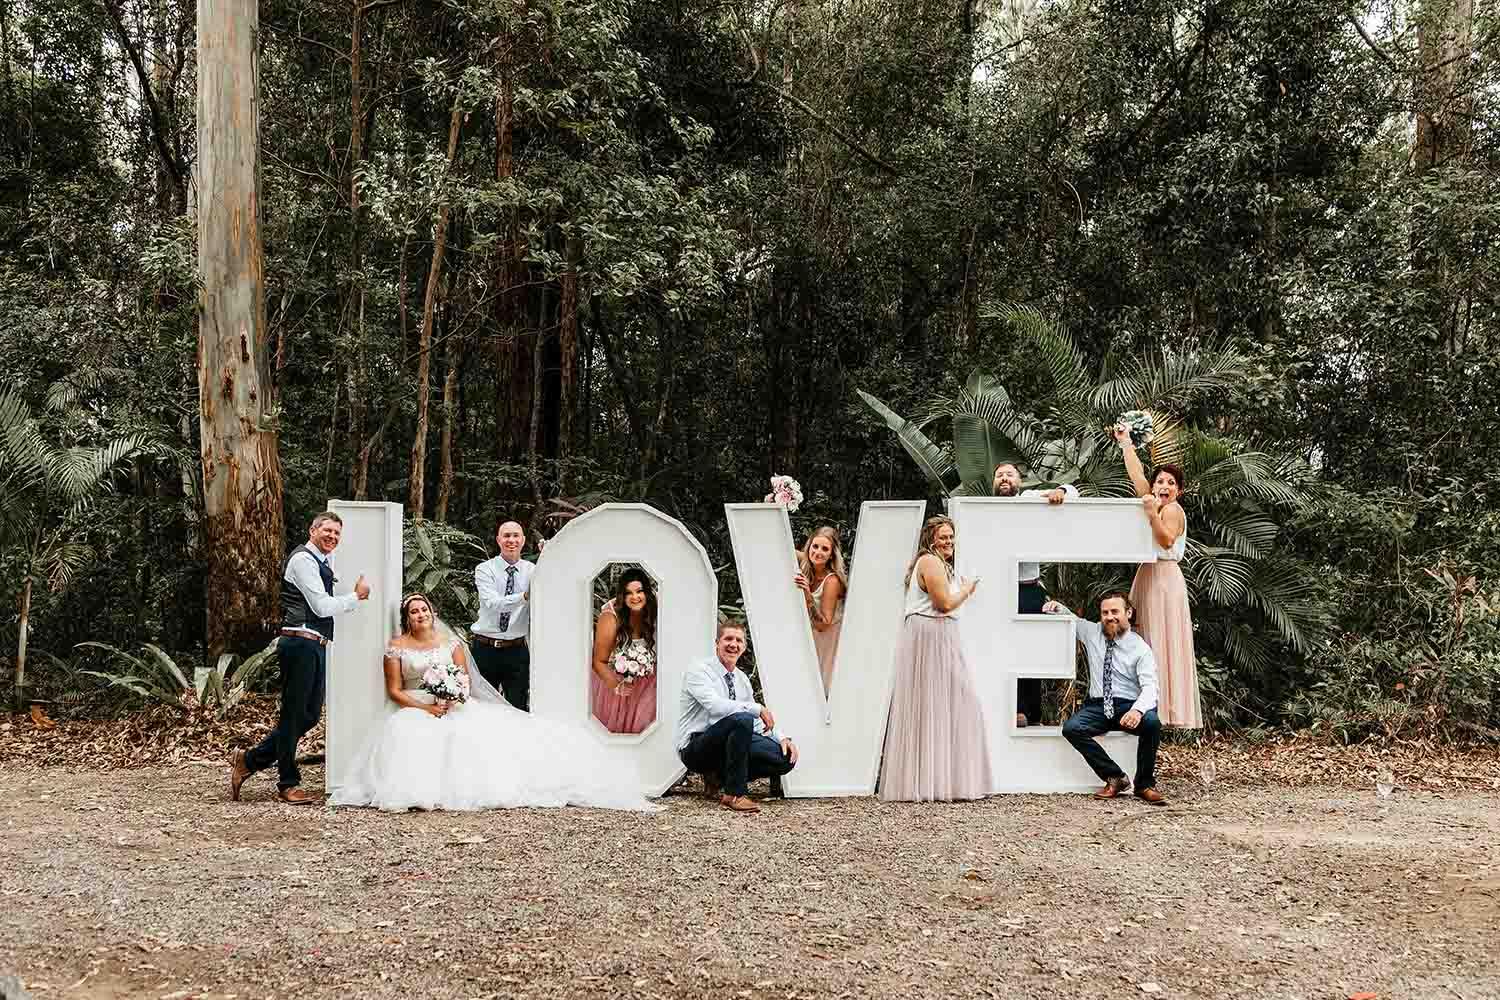 Bridal party interacting with big Love letters - Bonville Golf resot weddings - Bellingen wedding photographer -Coffs harbour wedding photographer -Nambucca wedding photographer